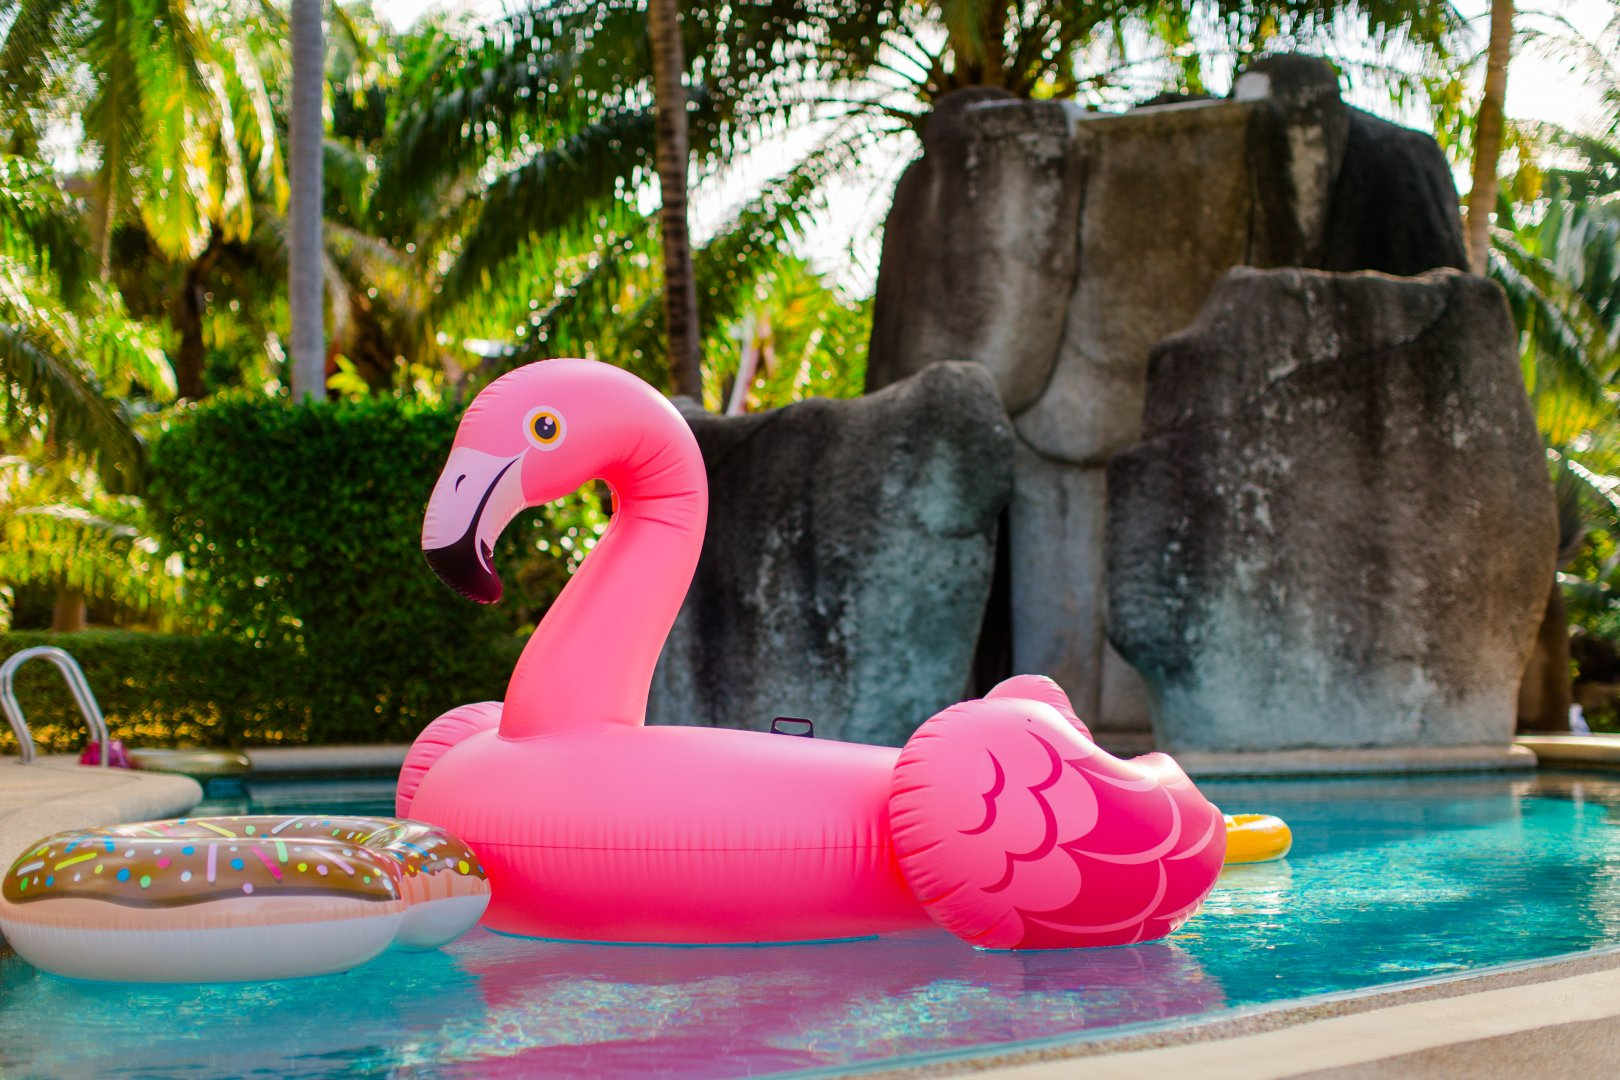 Flamingo Pink Water bird Swimming pool Bird Leisure Inflatable Fun Vacation Games Recreation Plant Water park